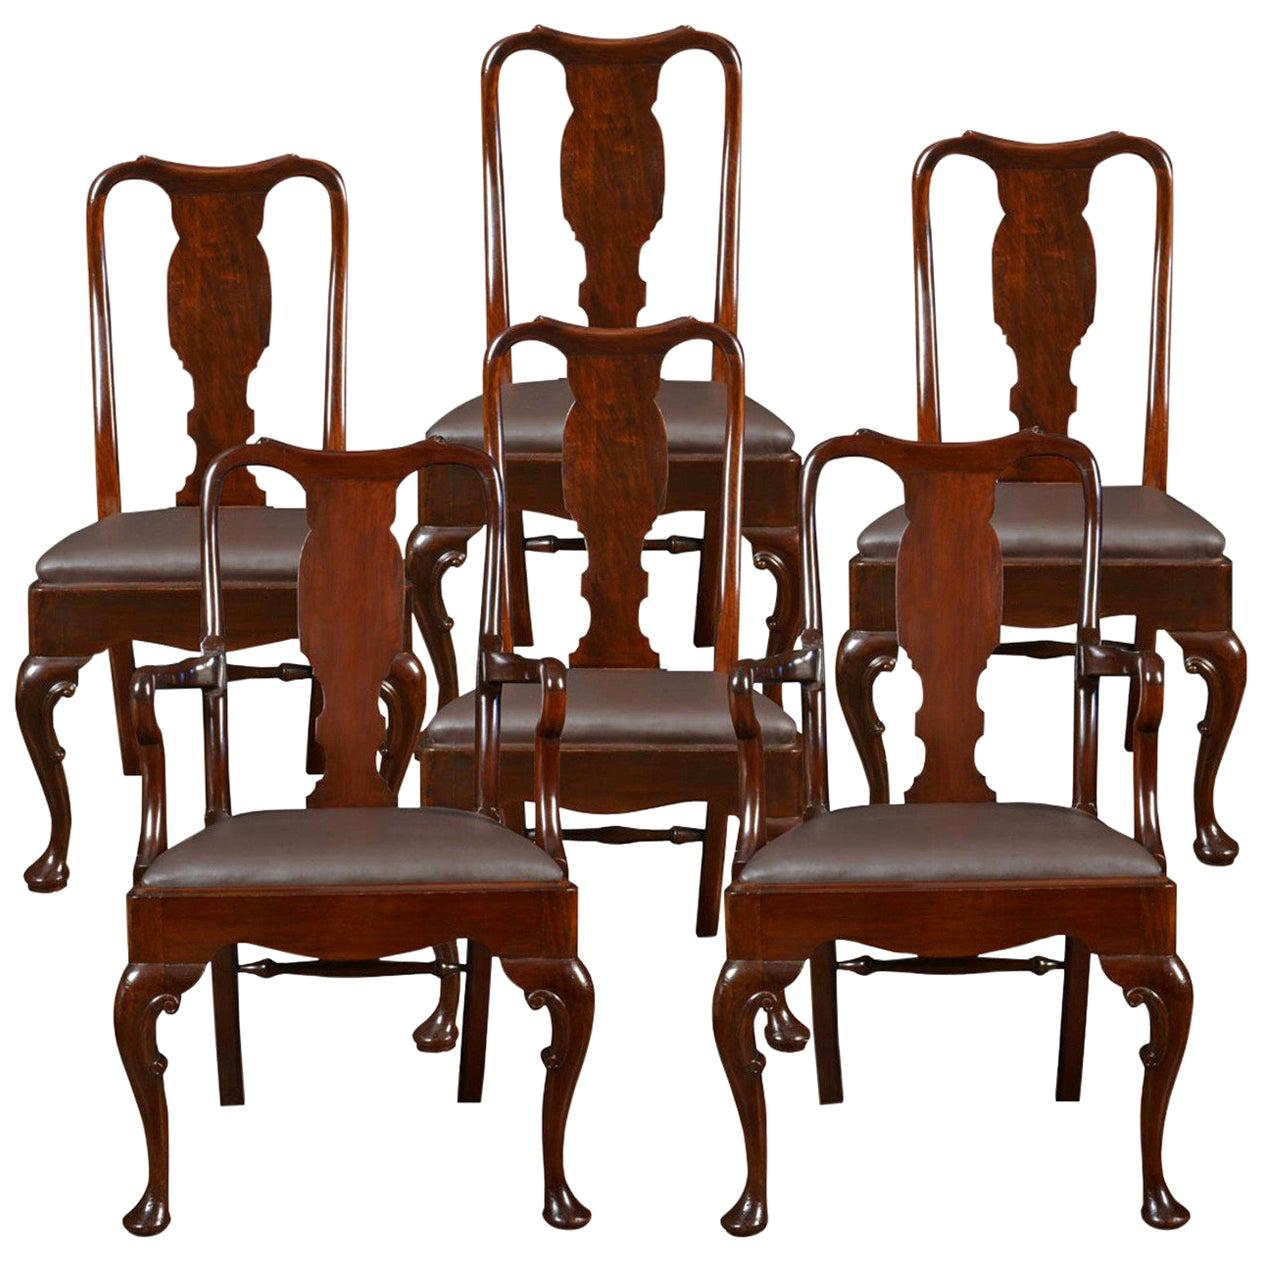 Set of Six Early 20th Century Queen Anne Style High Back Dining Chairs